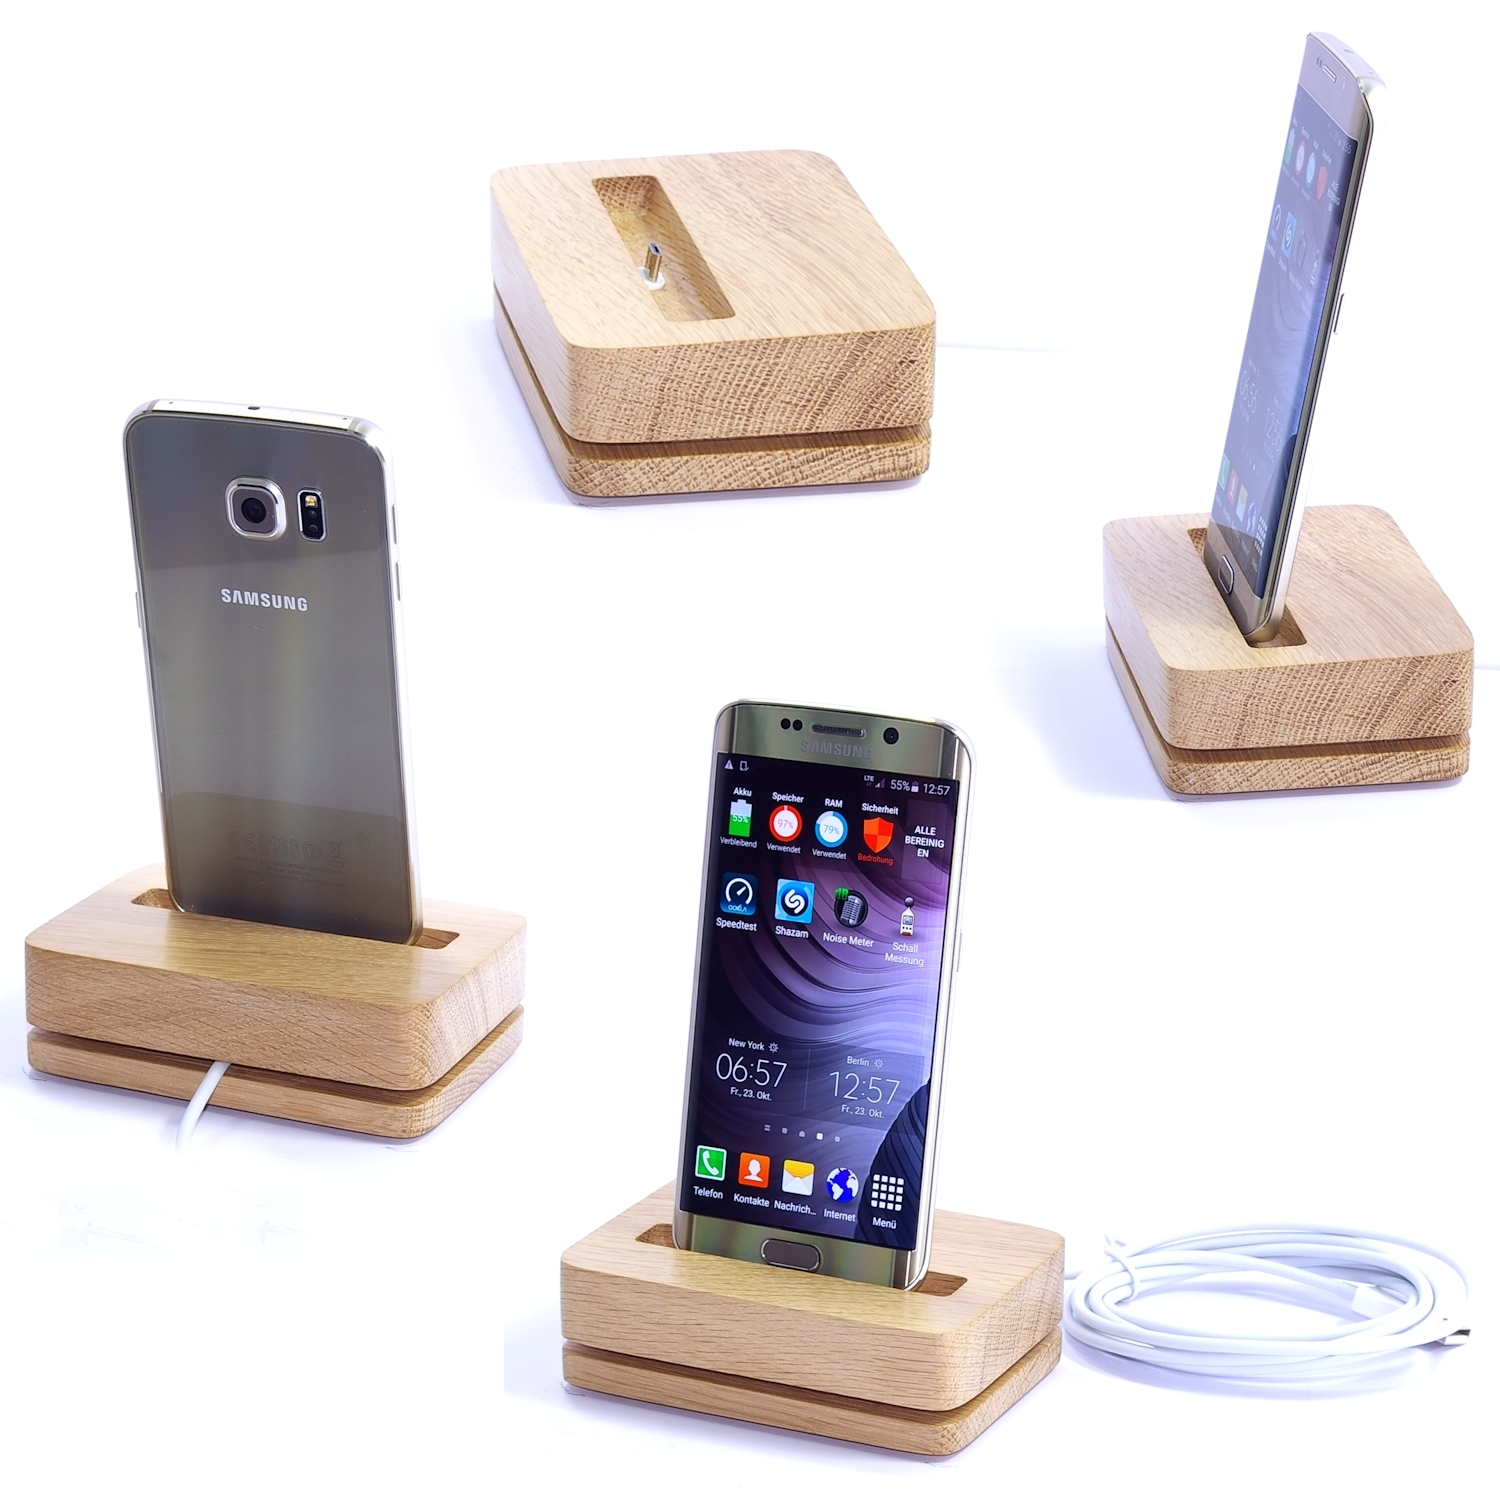 xpear holz design dock docking station ladestation. Black Bedroom Furniture Sets. Home Design Ideas